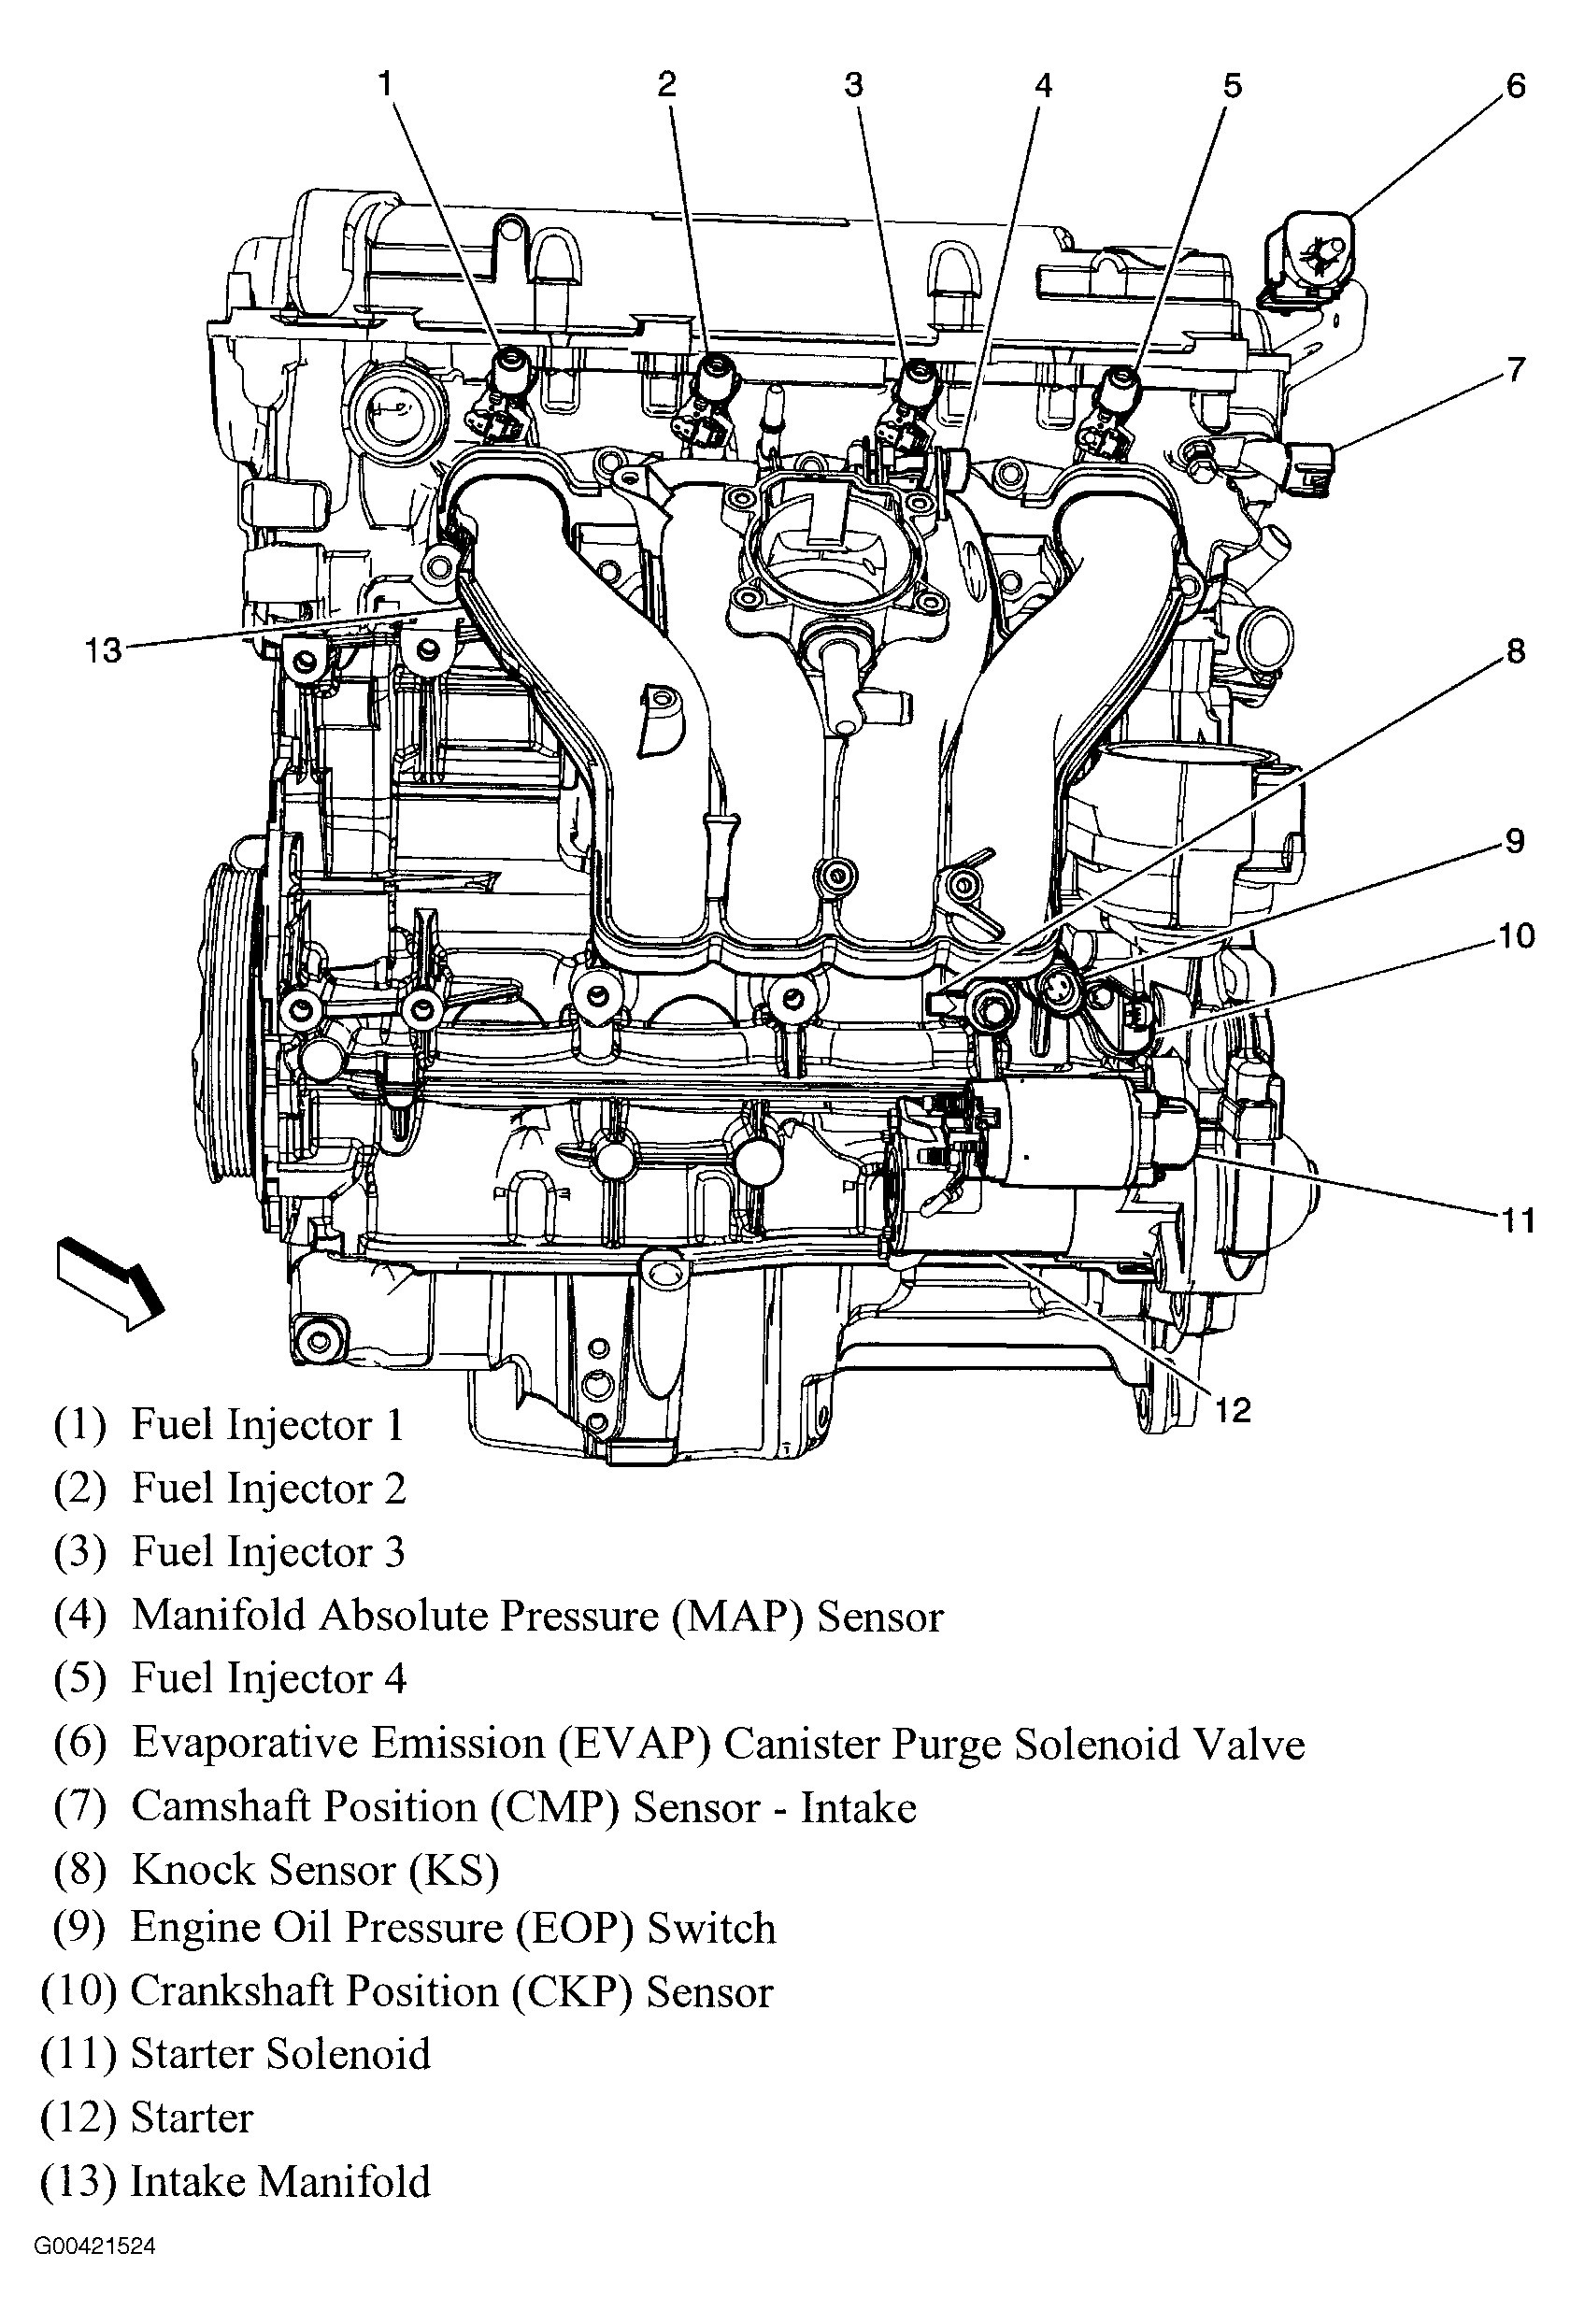 Engine Diagram 5 3 Vortec | Wiring Schematic Diagram - 18 ... on